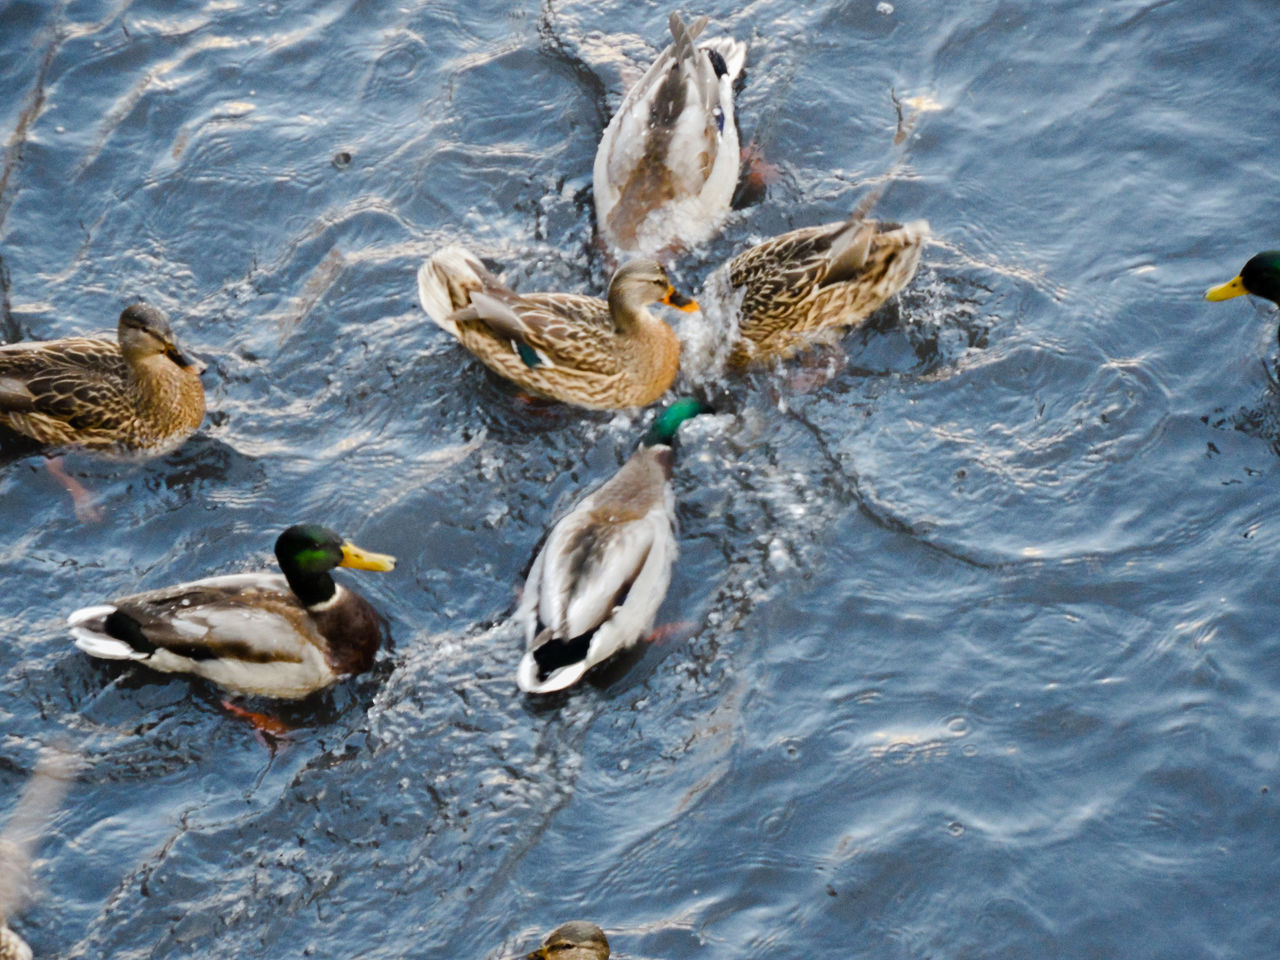 water, swimming, bird, animal themes, animals in the wild, young bird, duck, animal wildlife, lake, waterfront, water bird, young animal, no people, nature, rippled, togetherness, duckling, day, outdoors